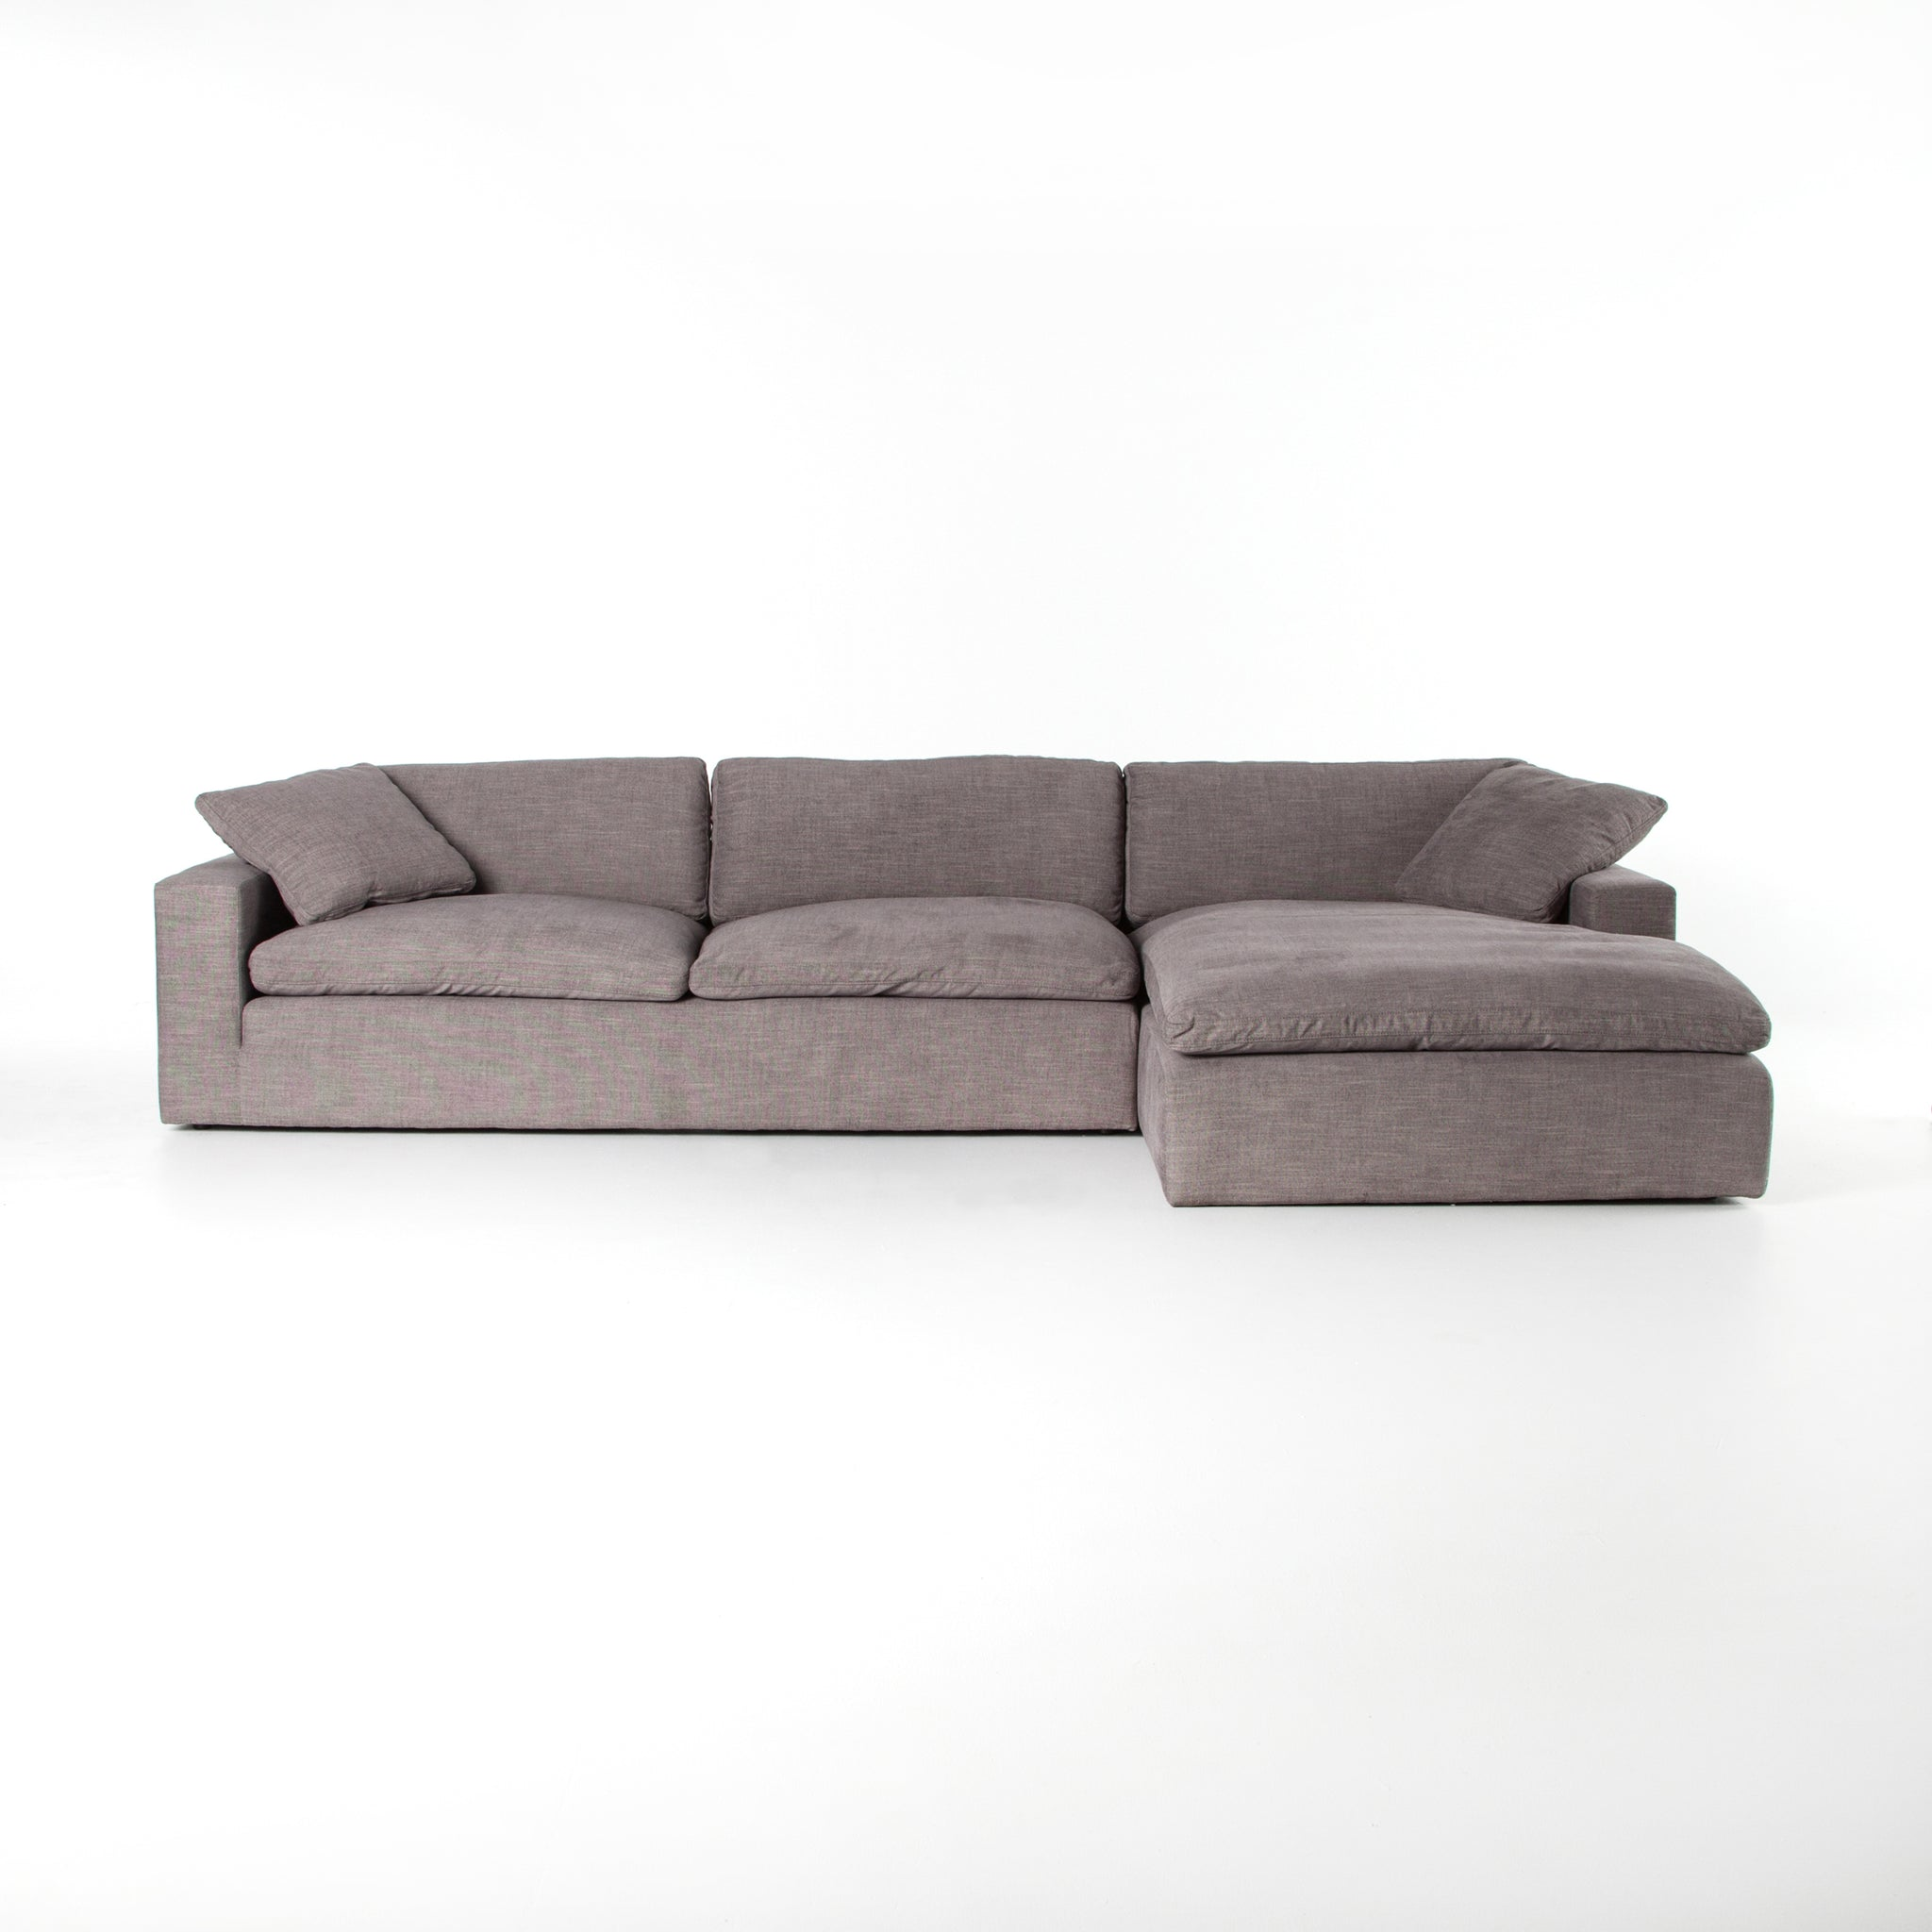 Plume 2 Piece Sectional In Harbor Grey Burke Decor